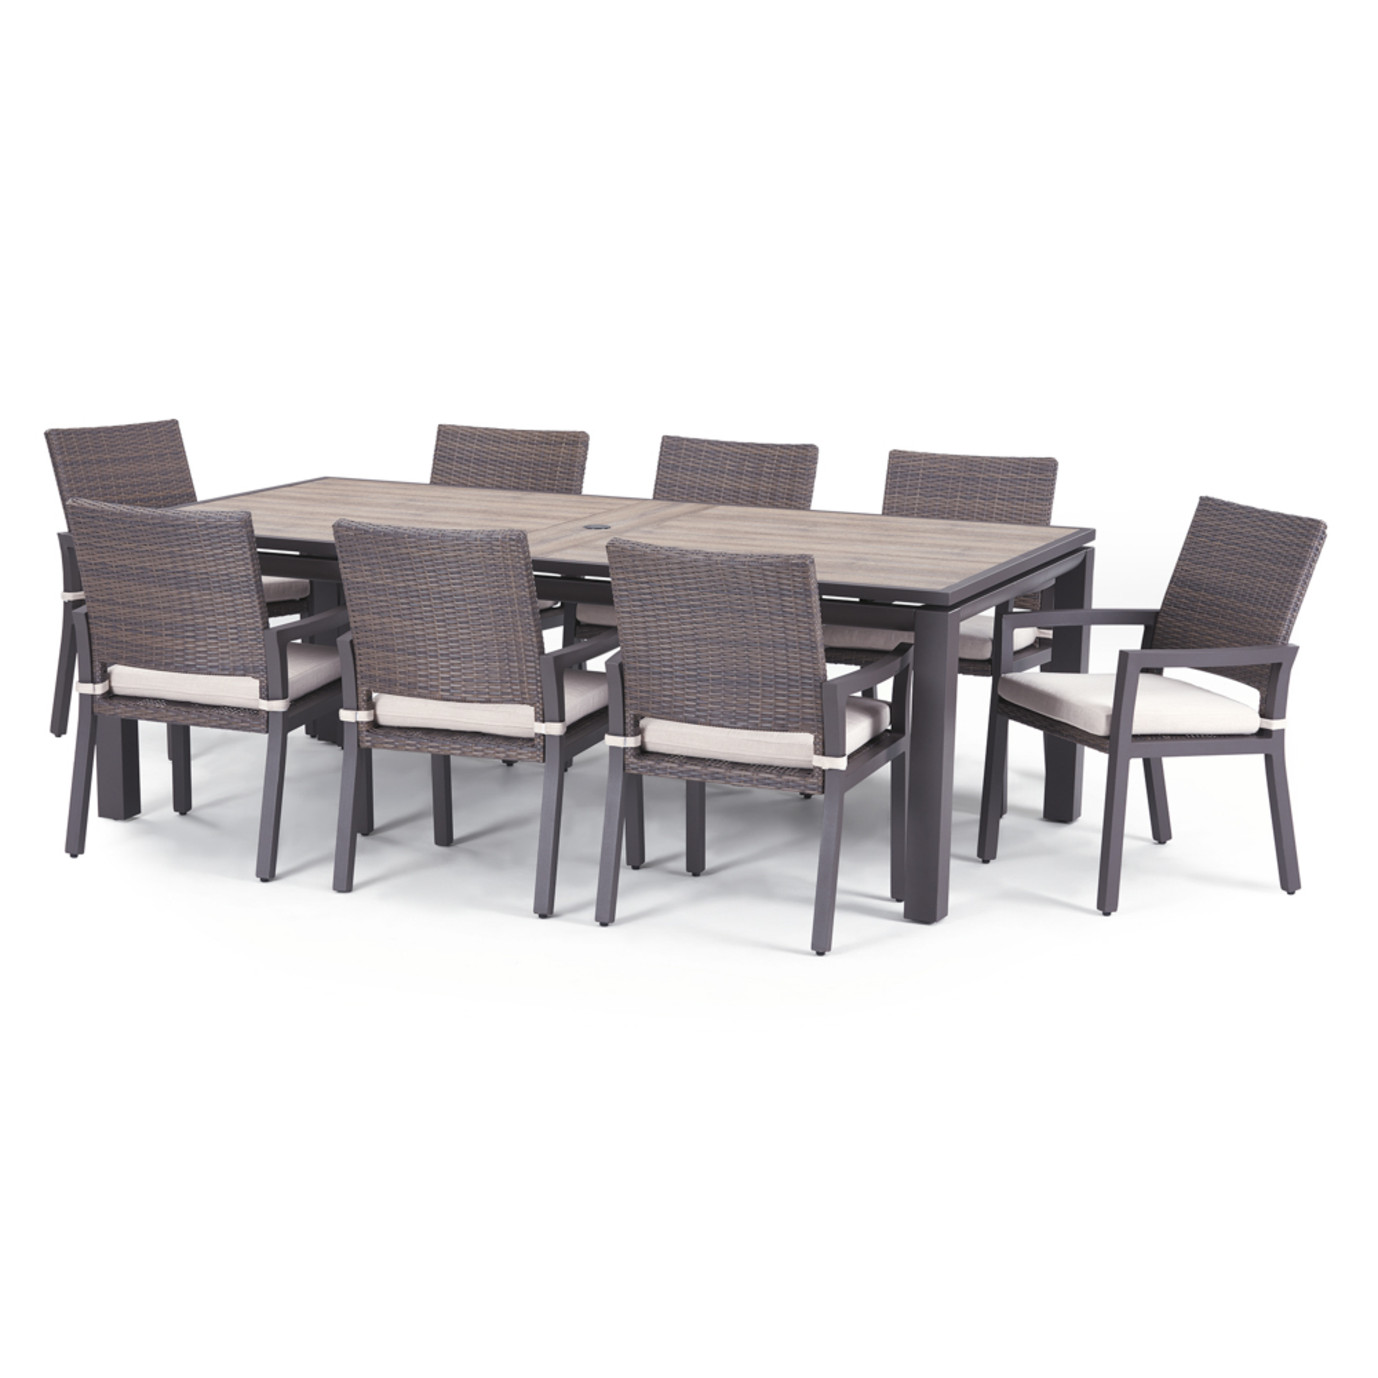 Milea™ 9 Piece Dining Set - Natural Beige